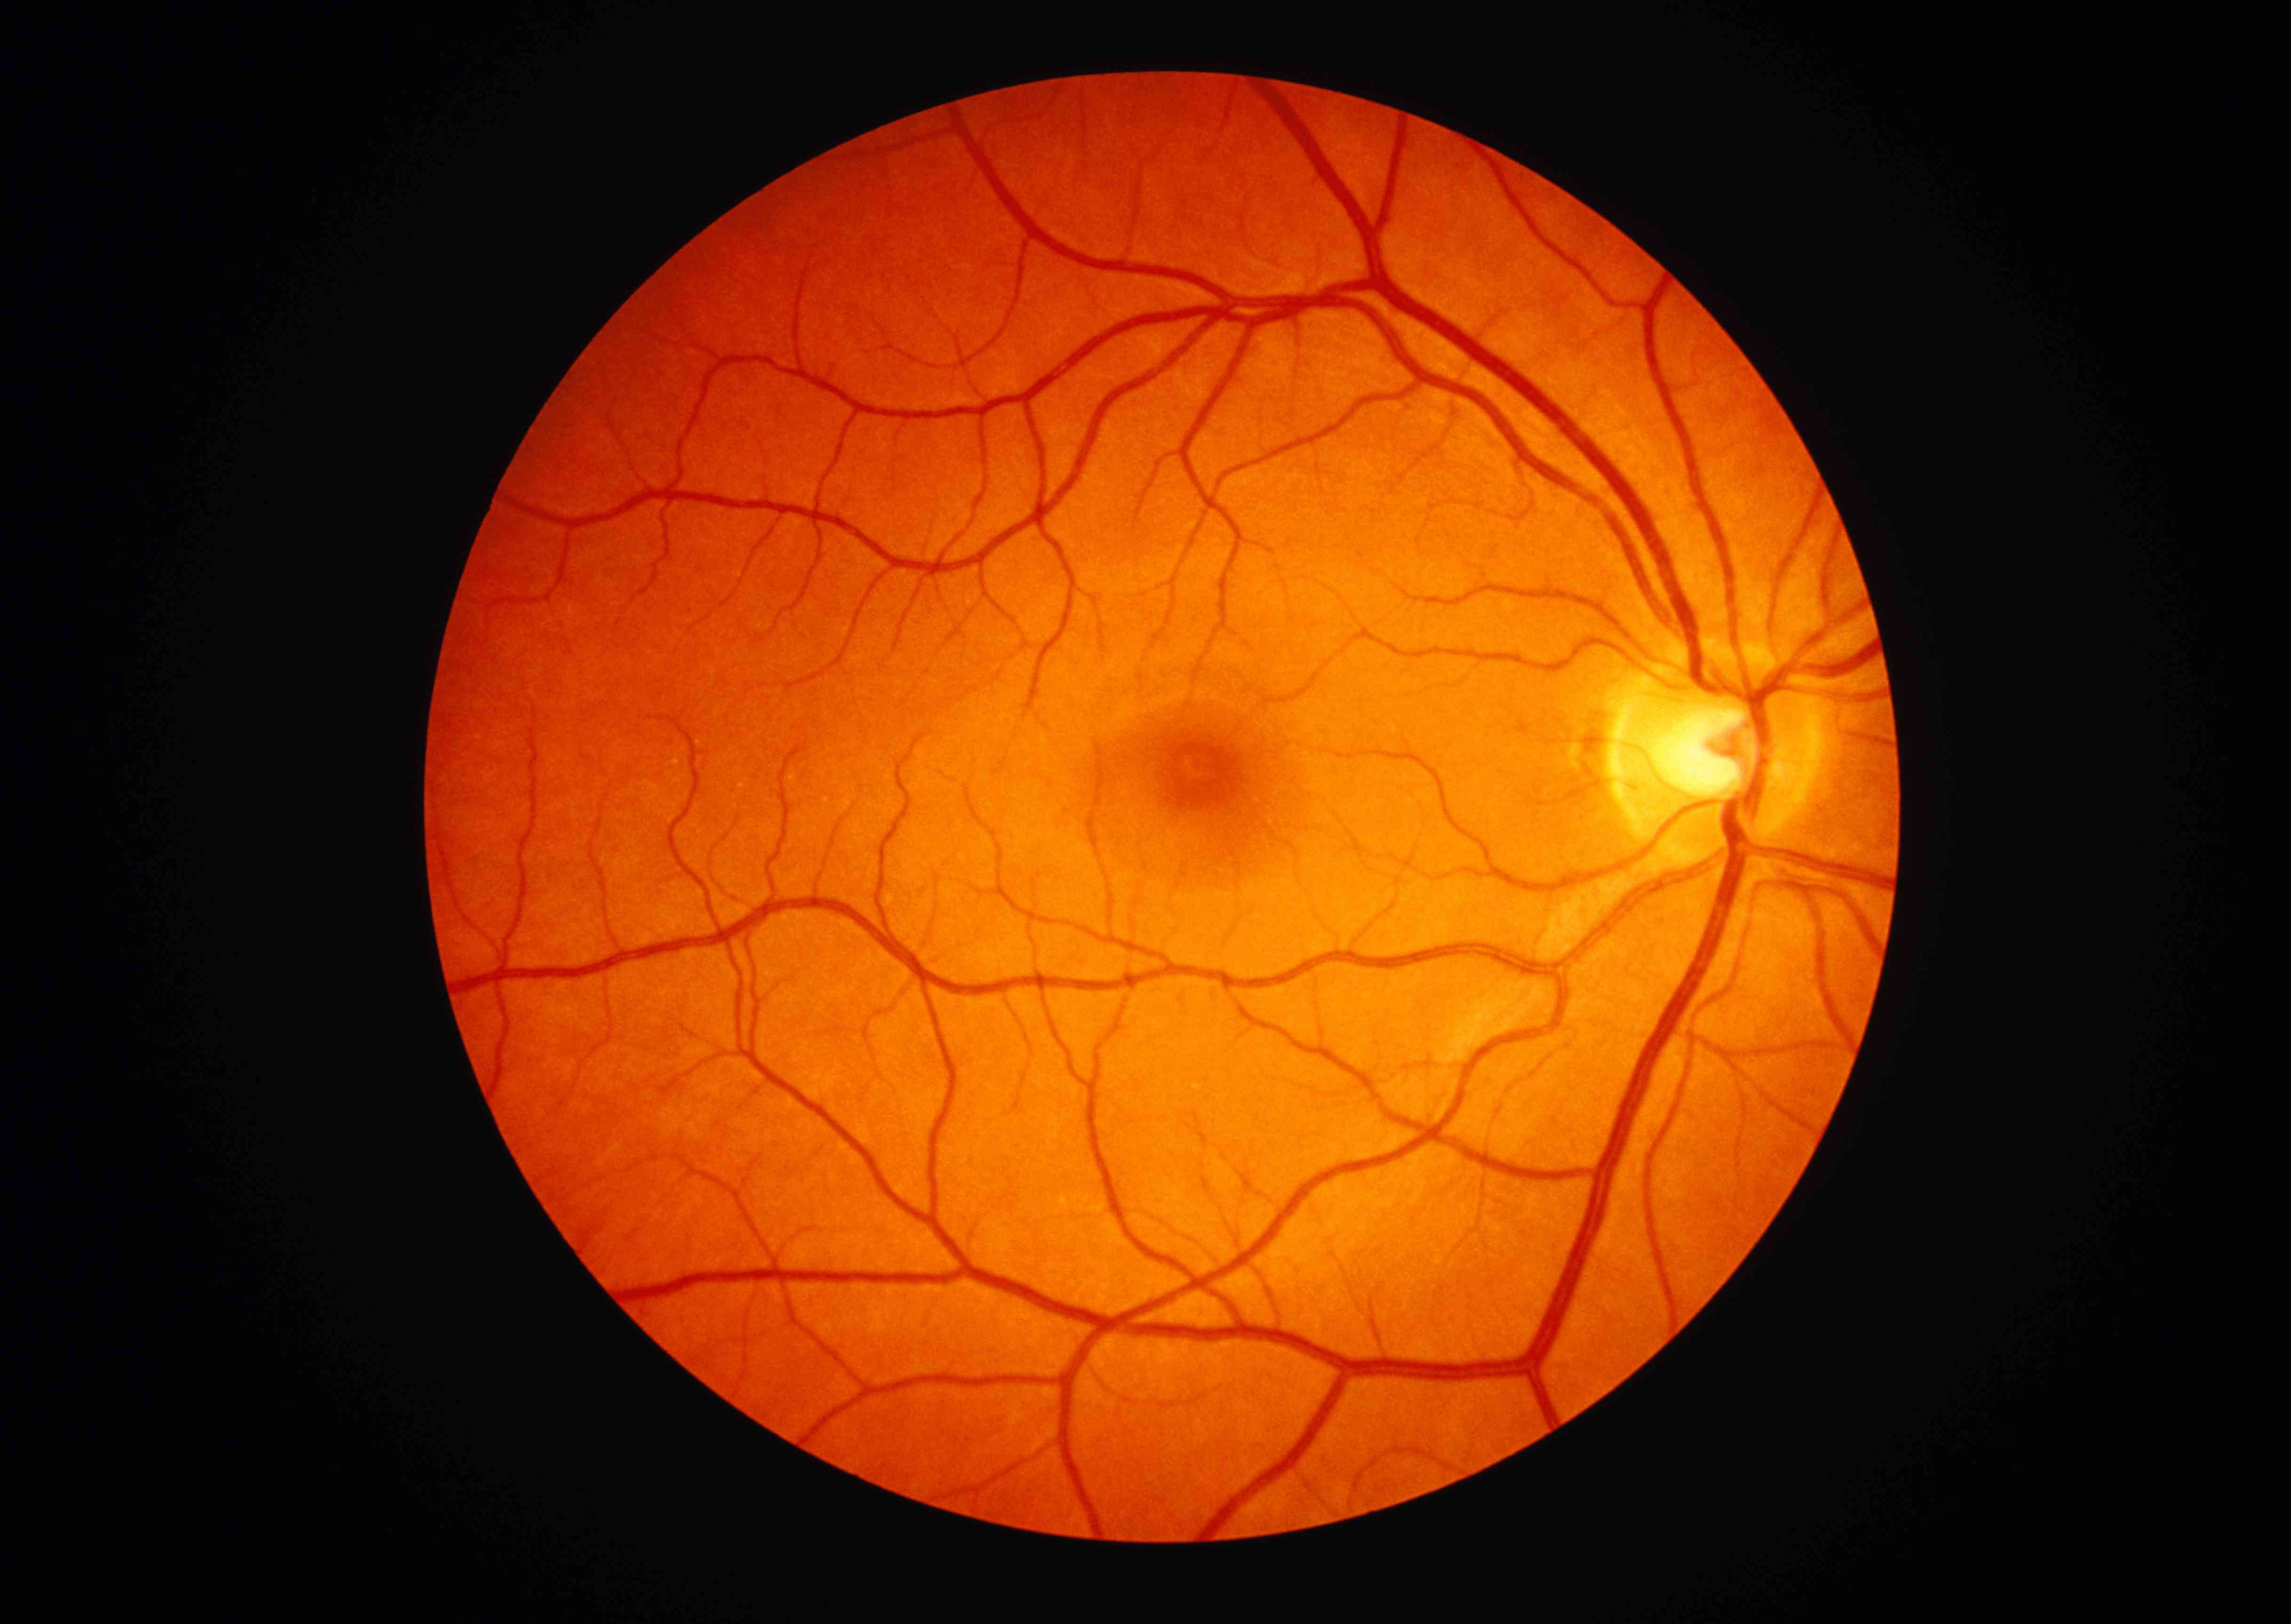 An image of a healthy retina